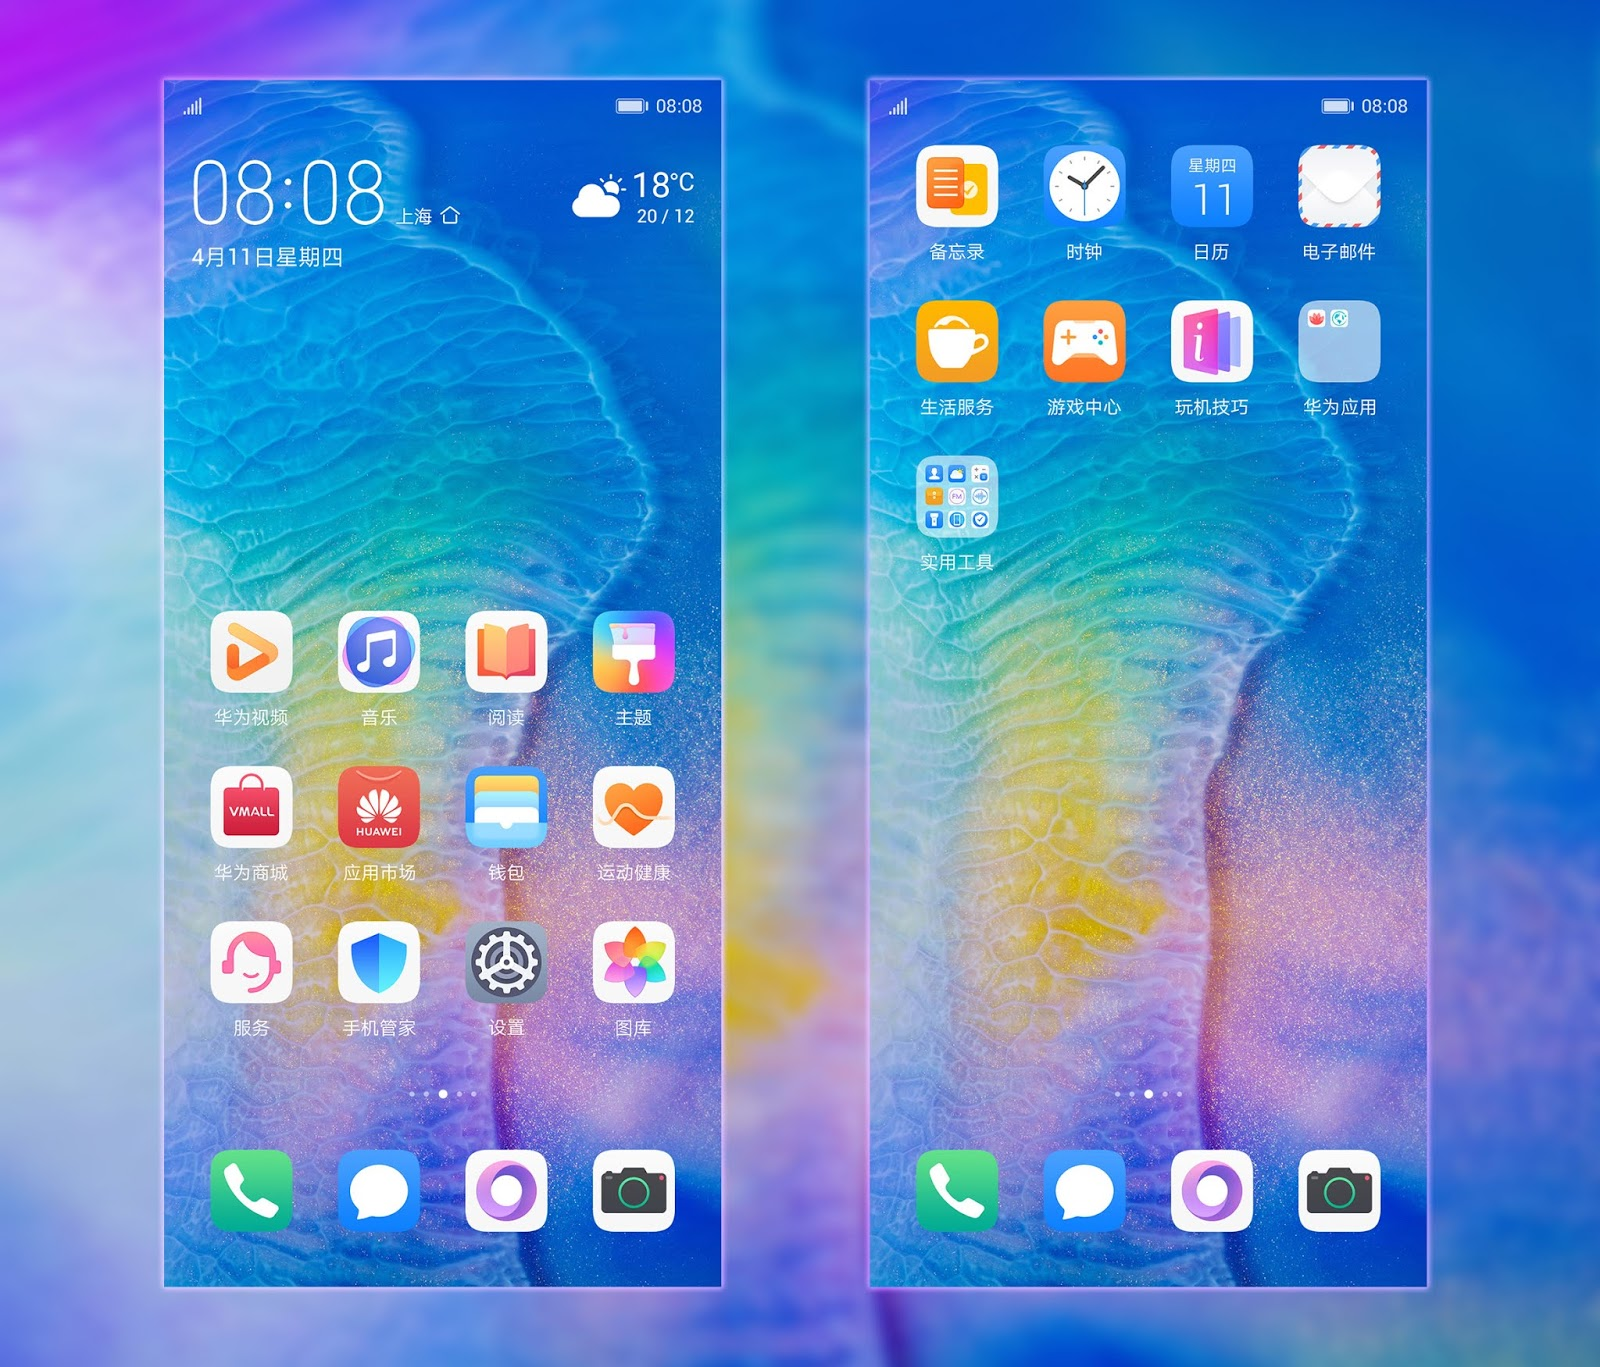 Huawei P30 & Huawei P30 Pro Stock Themes For EMUI 5, EMUI 8